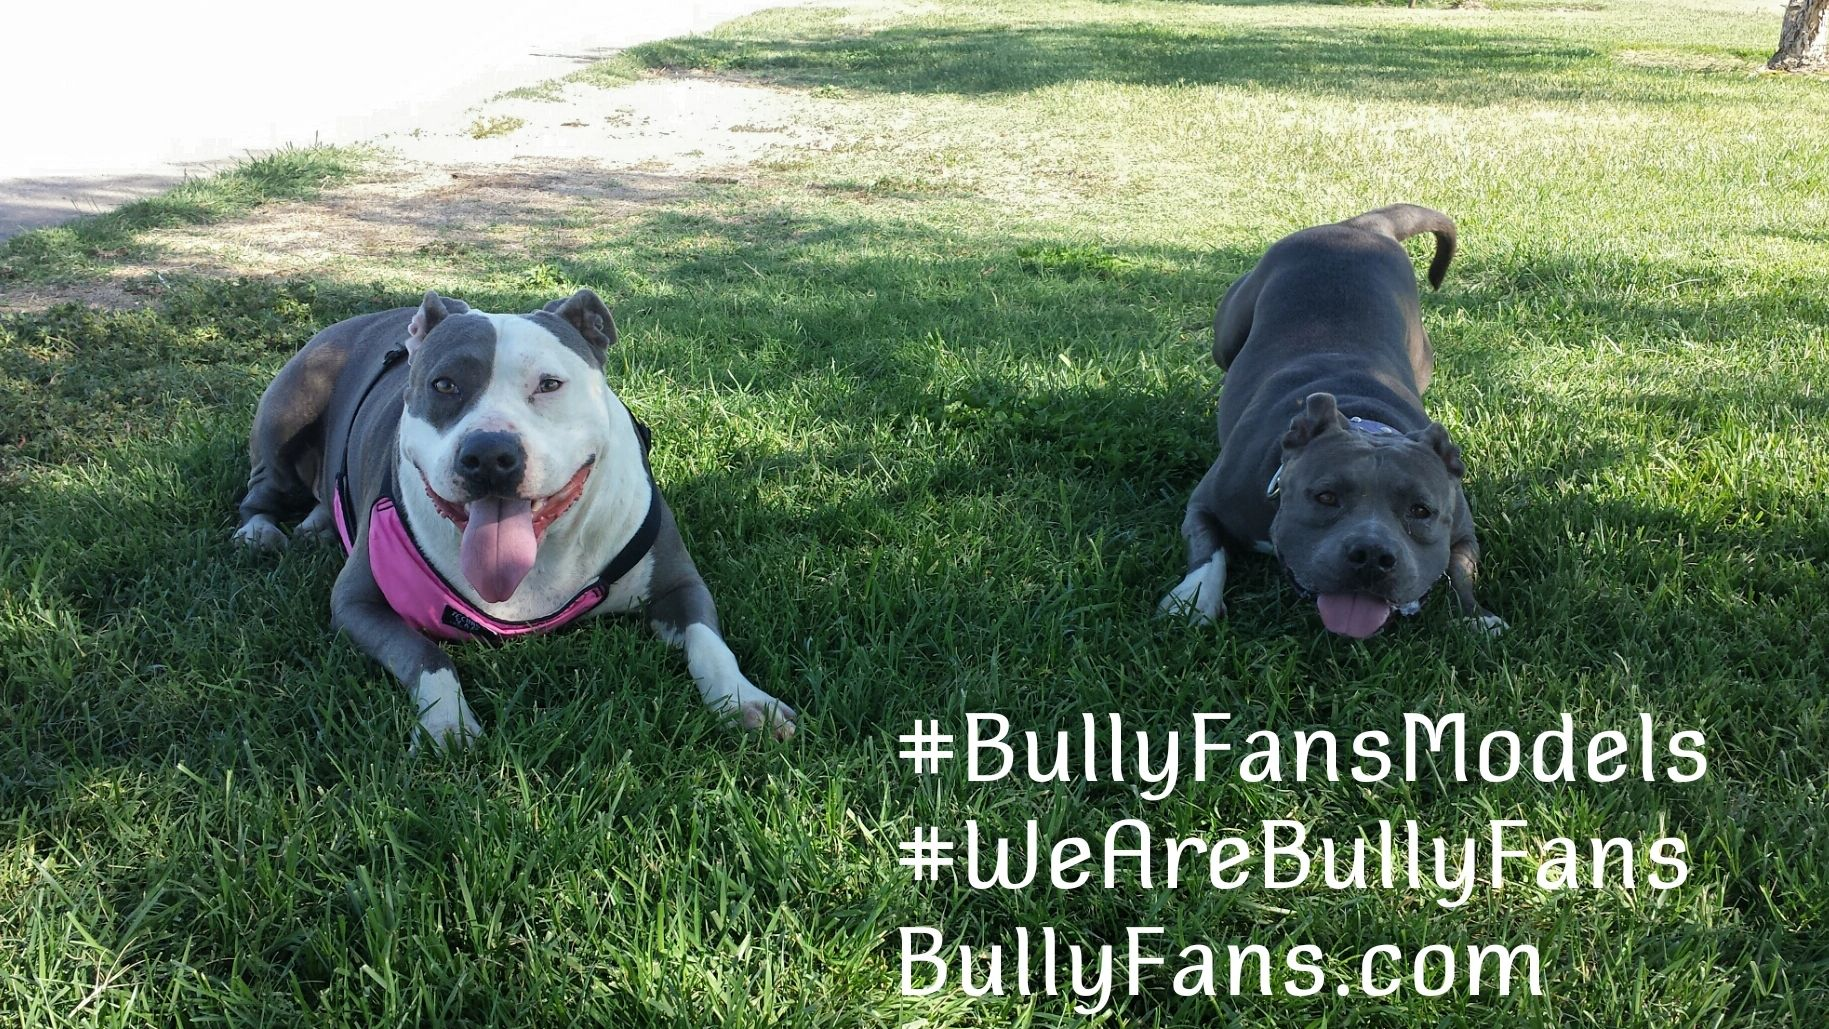 Bully Fans models Kali and Daisy Mae model Bully Fans products